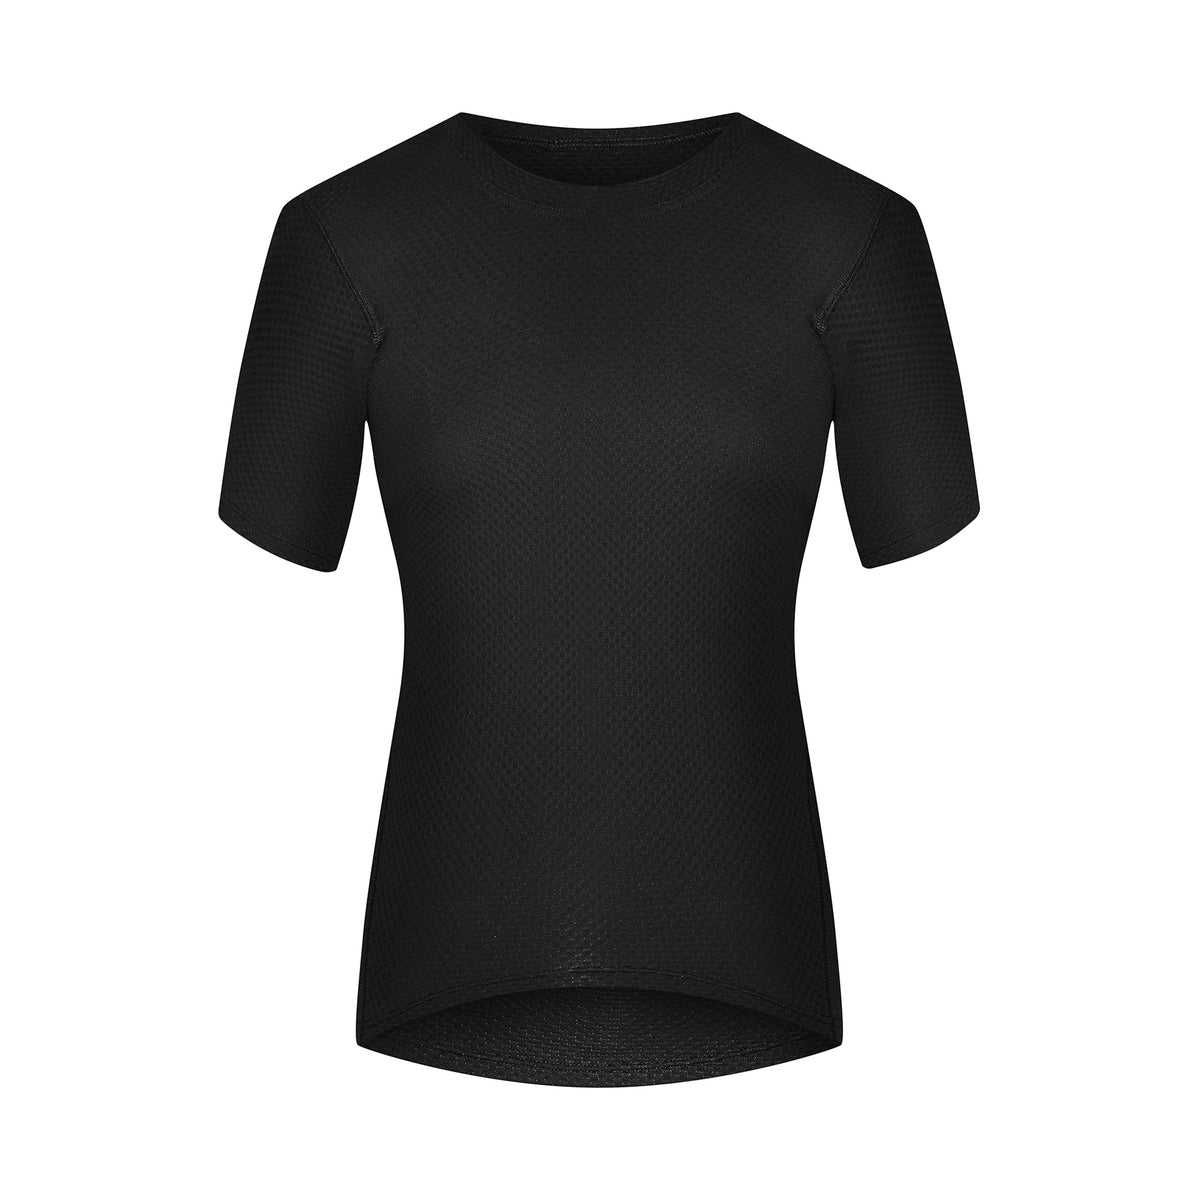 Domestique Short Sleeve Baselayer Black women